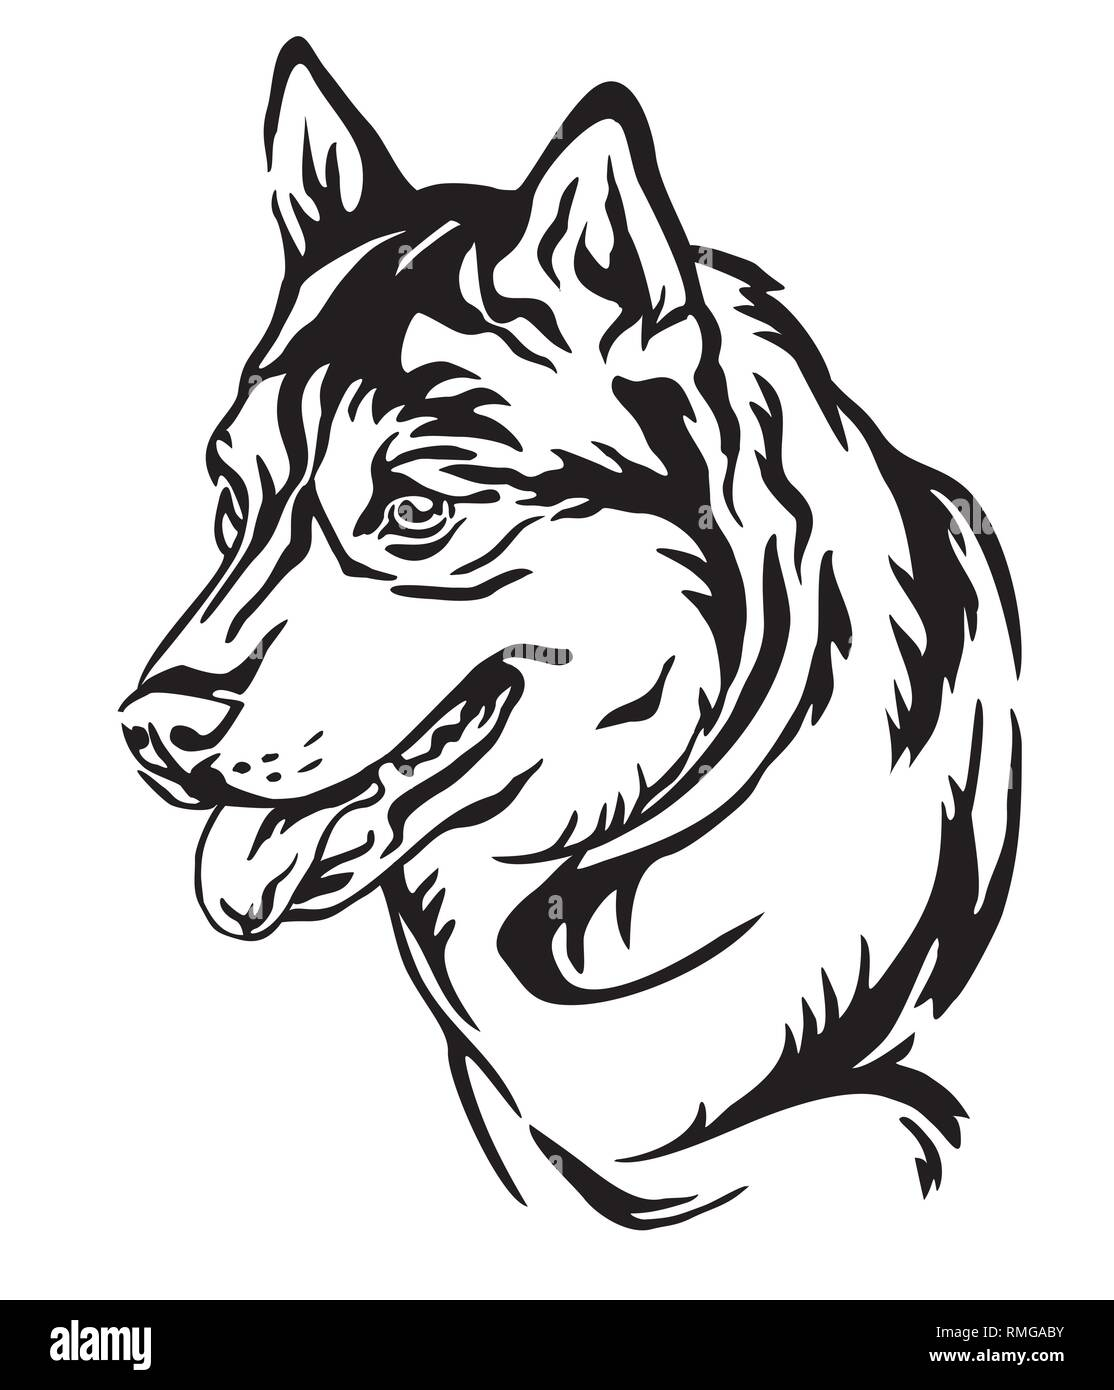 Decorative outline portrait of Dog Siberian Husky looking in profile, vector illustration in black color isolated on white background. Image for desig - Stock Vector